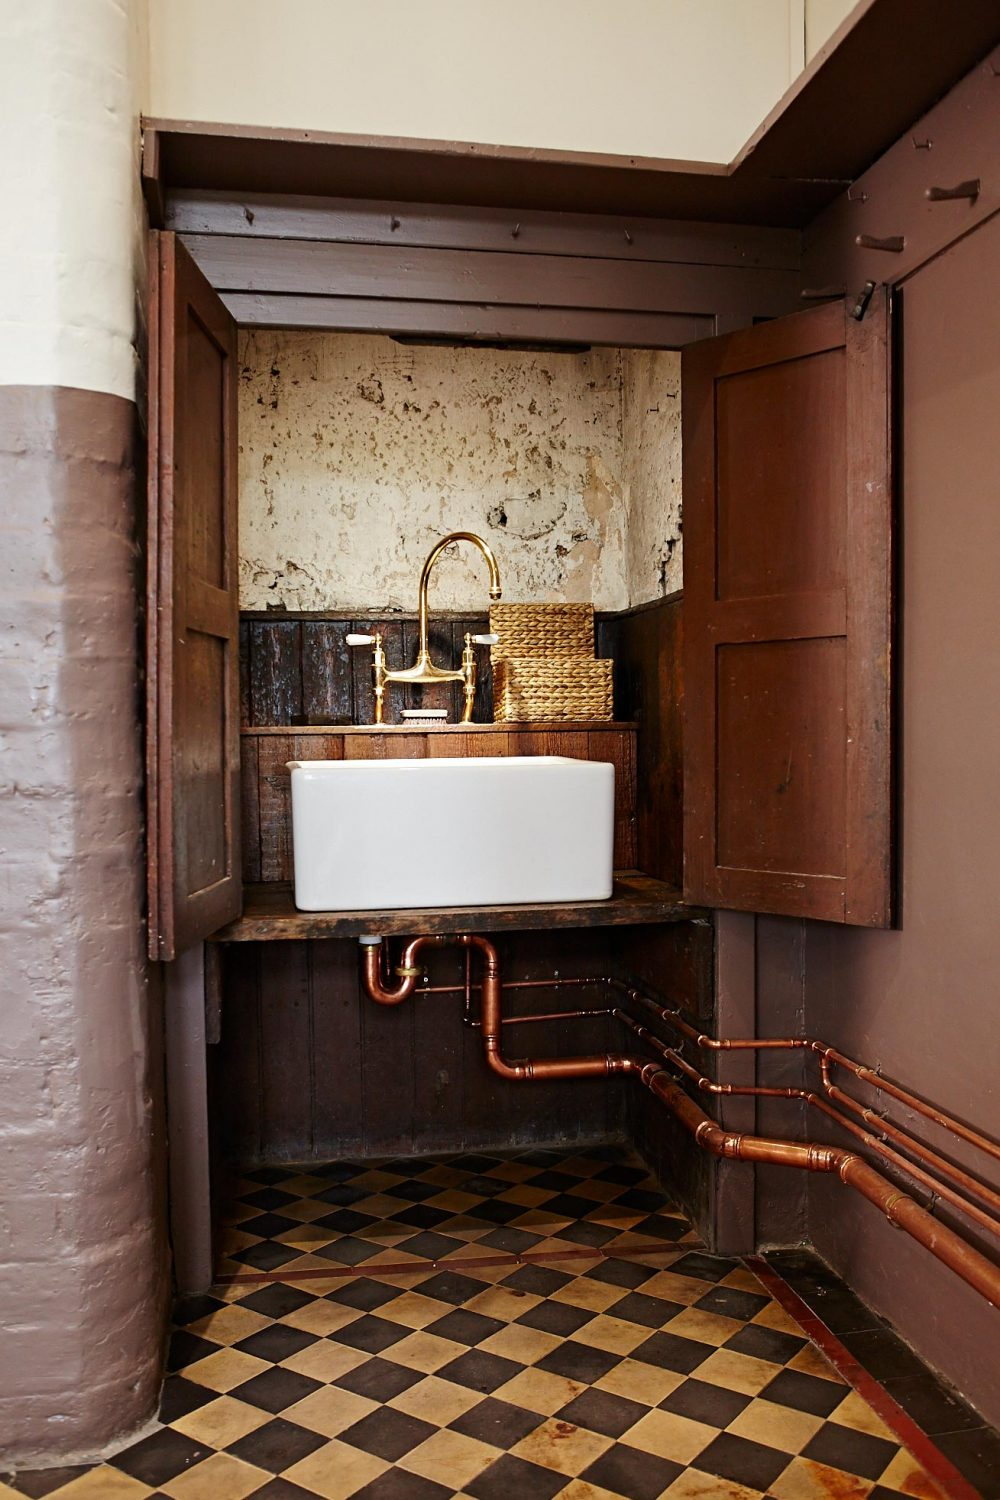 Shaws ceramic sink in original cupboard with exposed copper pipes and brass mixer tap